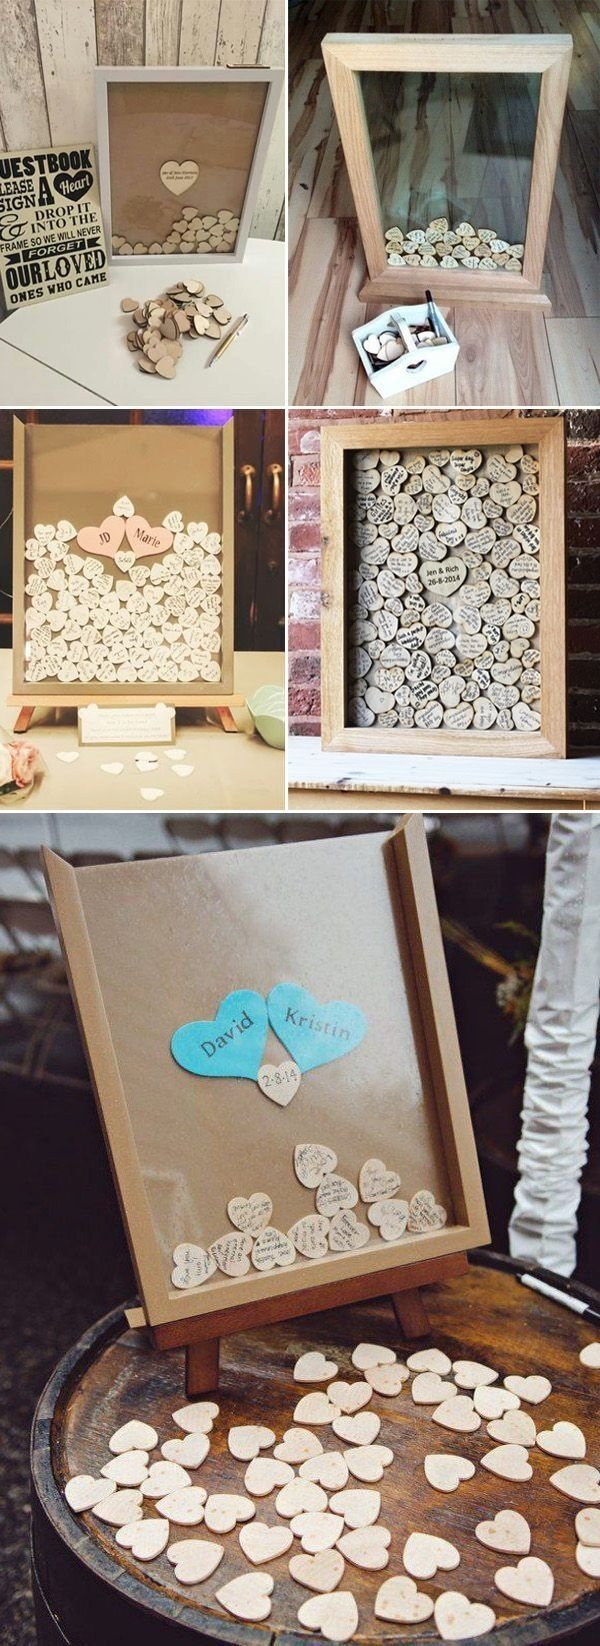 10 Most Recommended Alternative Wedding Guest Book Ideas unique alternative wedding guest book ideas idees de mariage